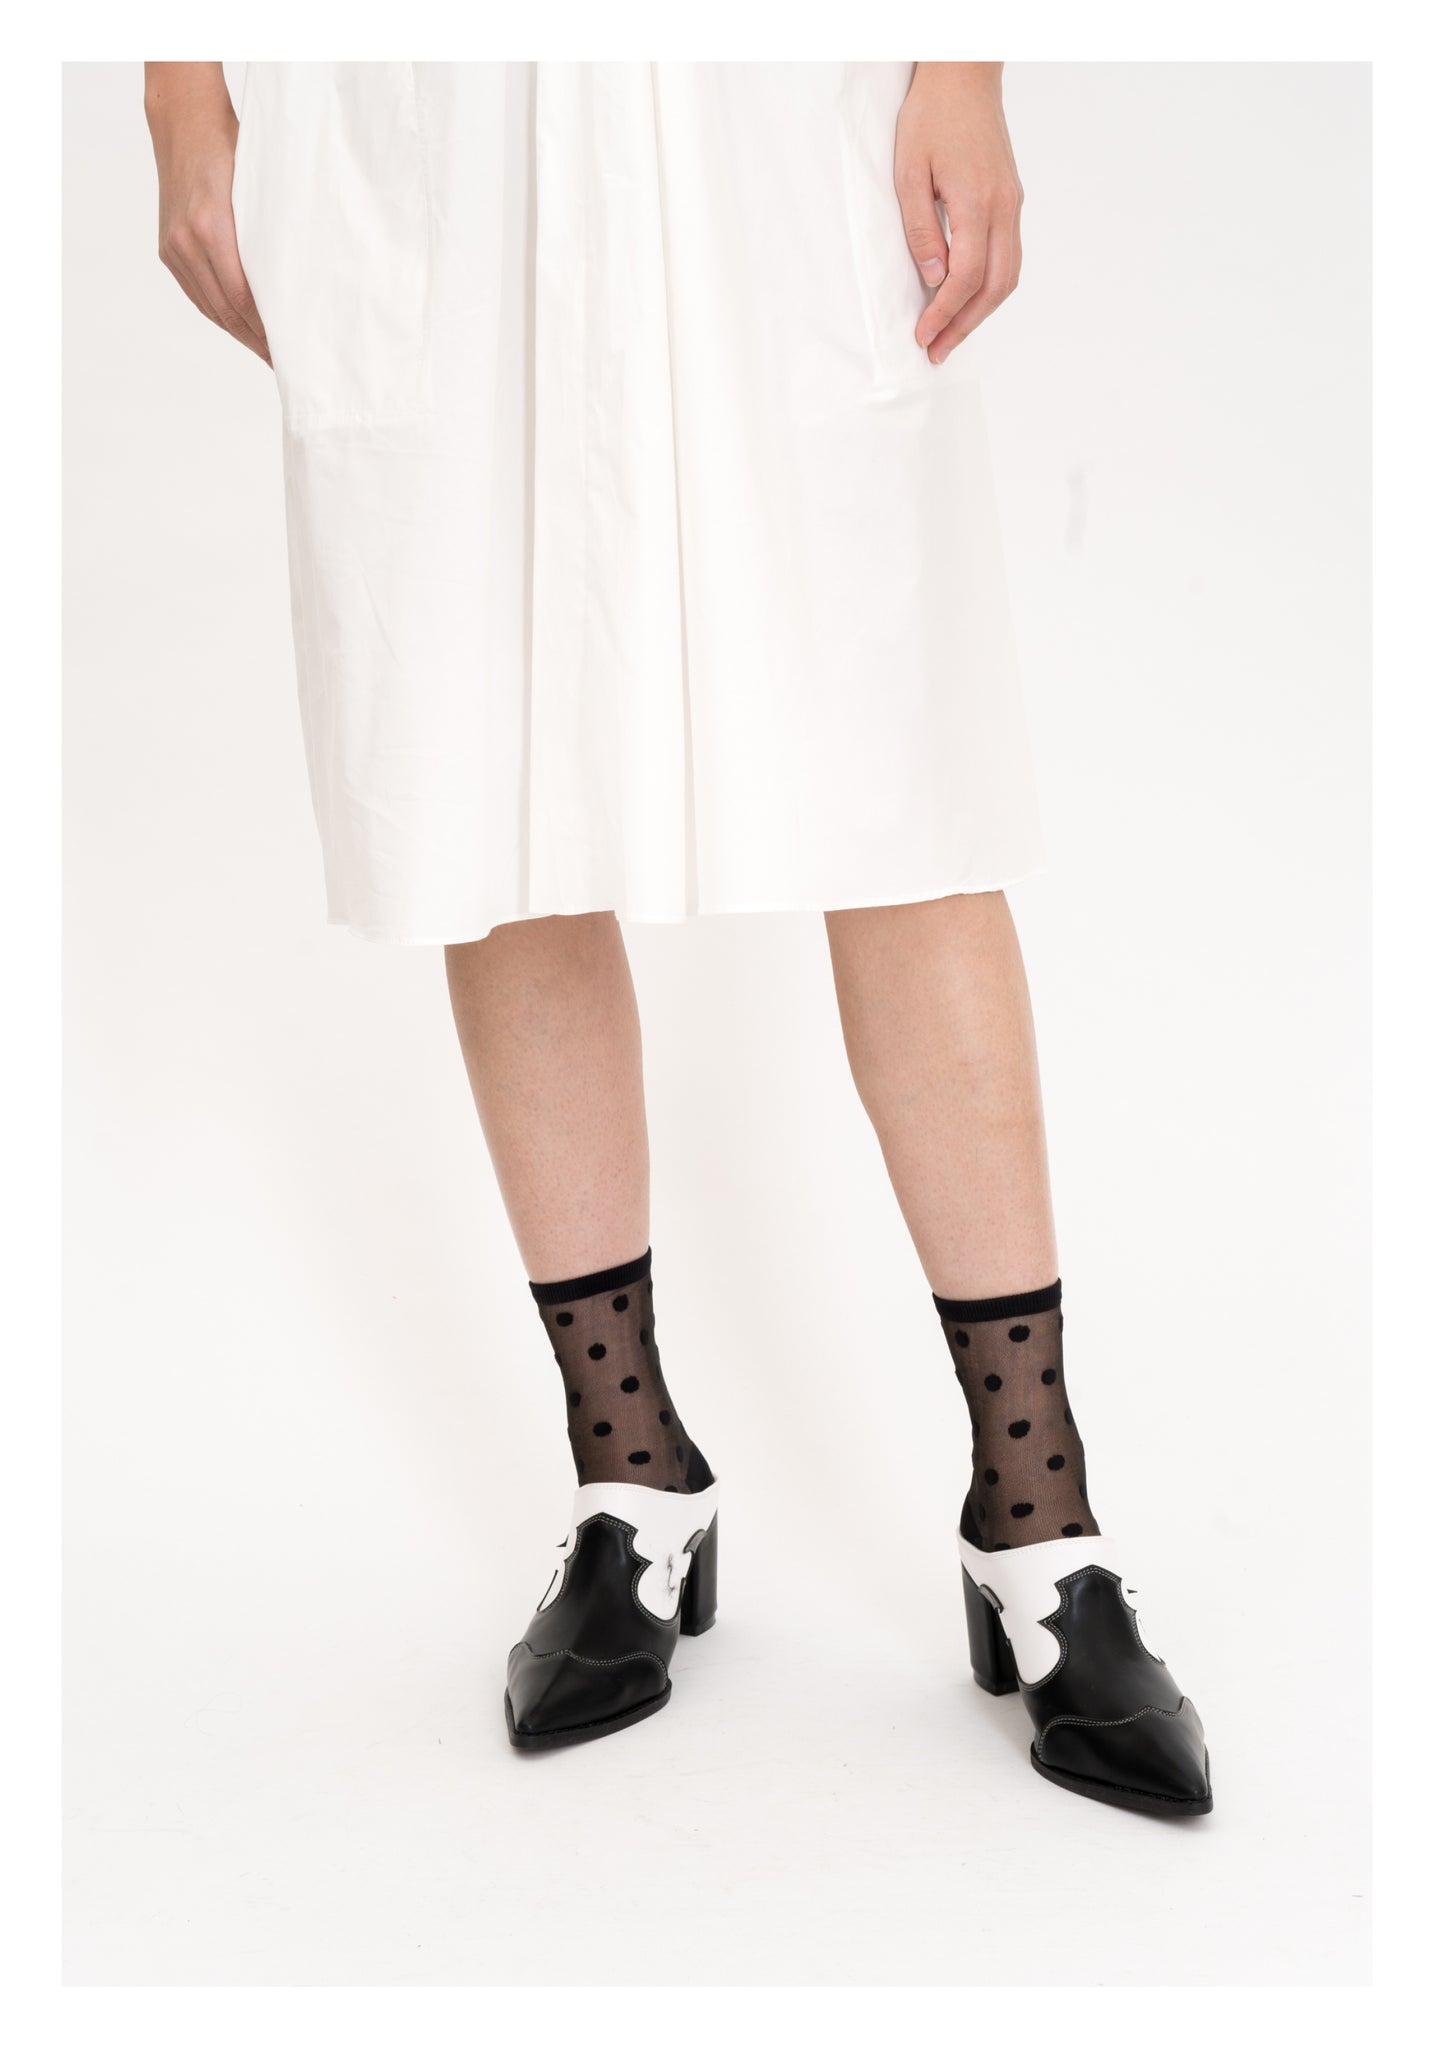 See Through Black Dot Socks Black - whoami